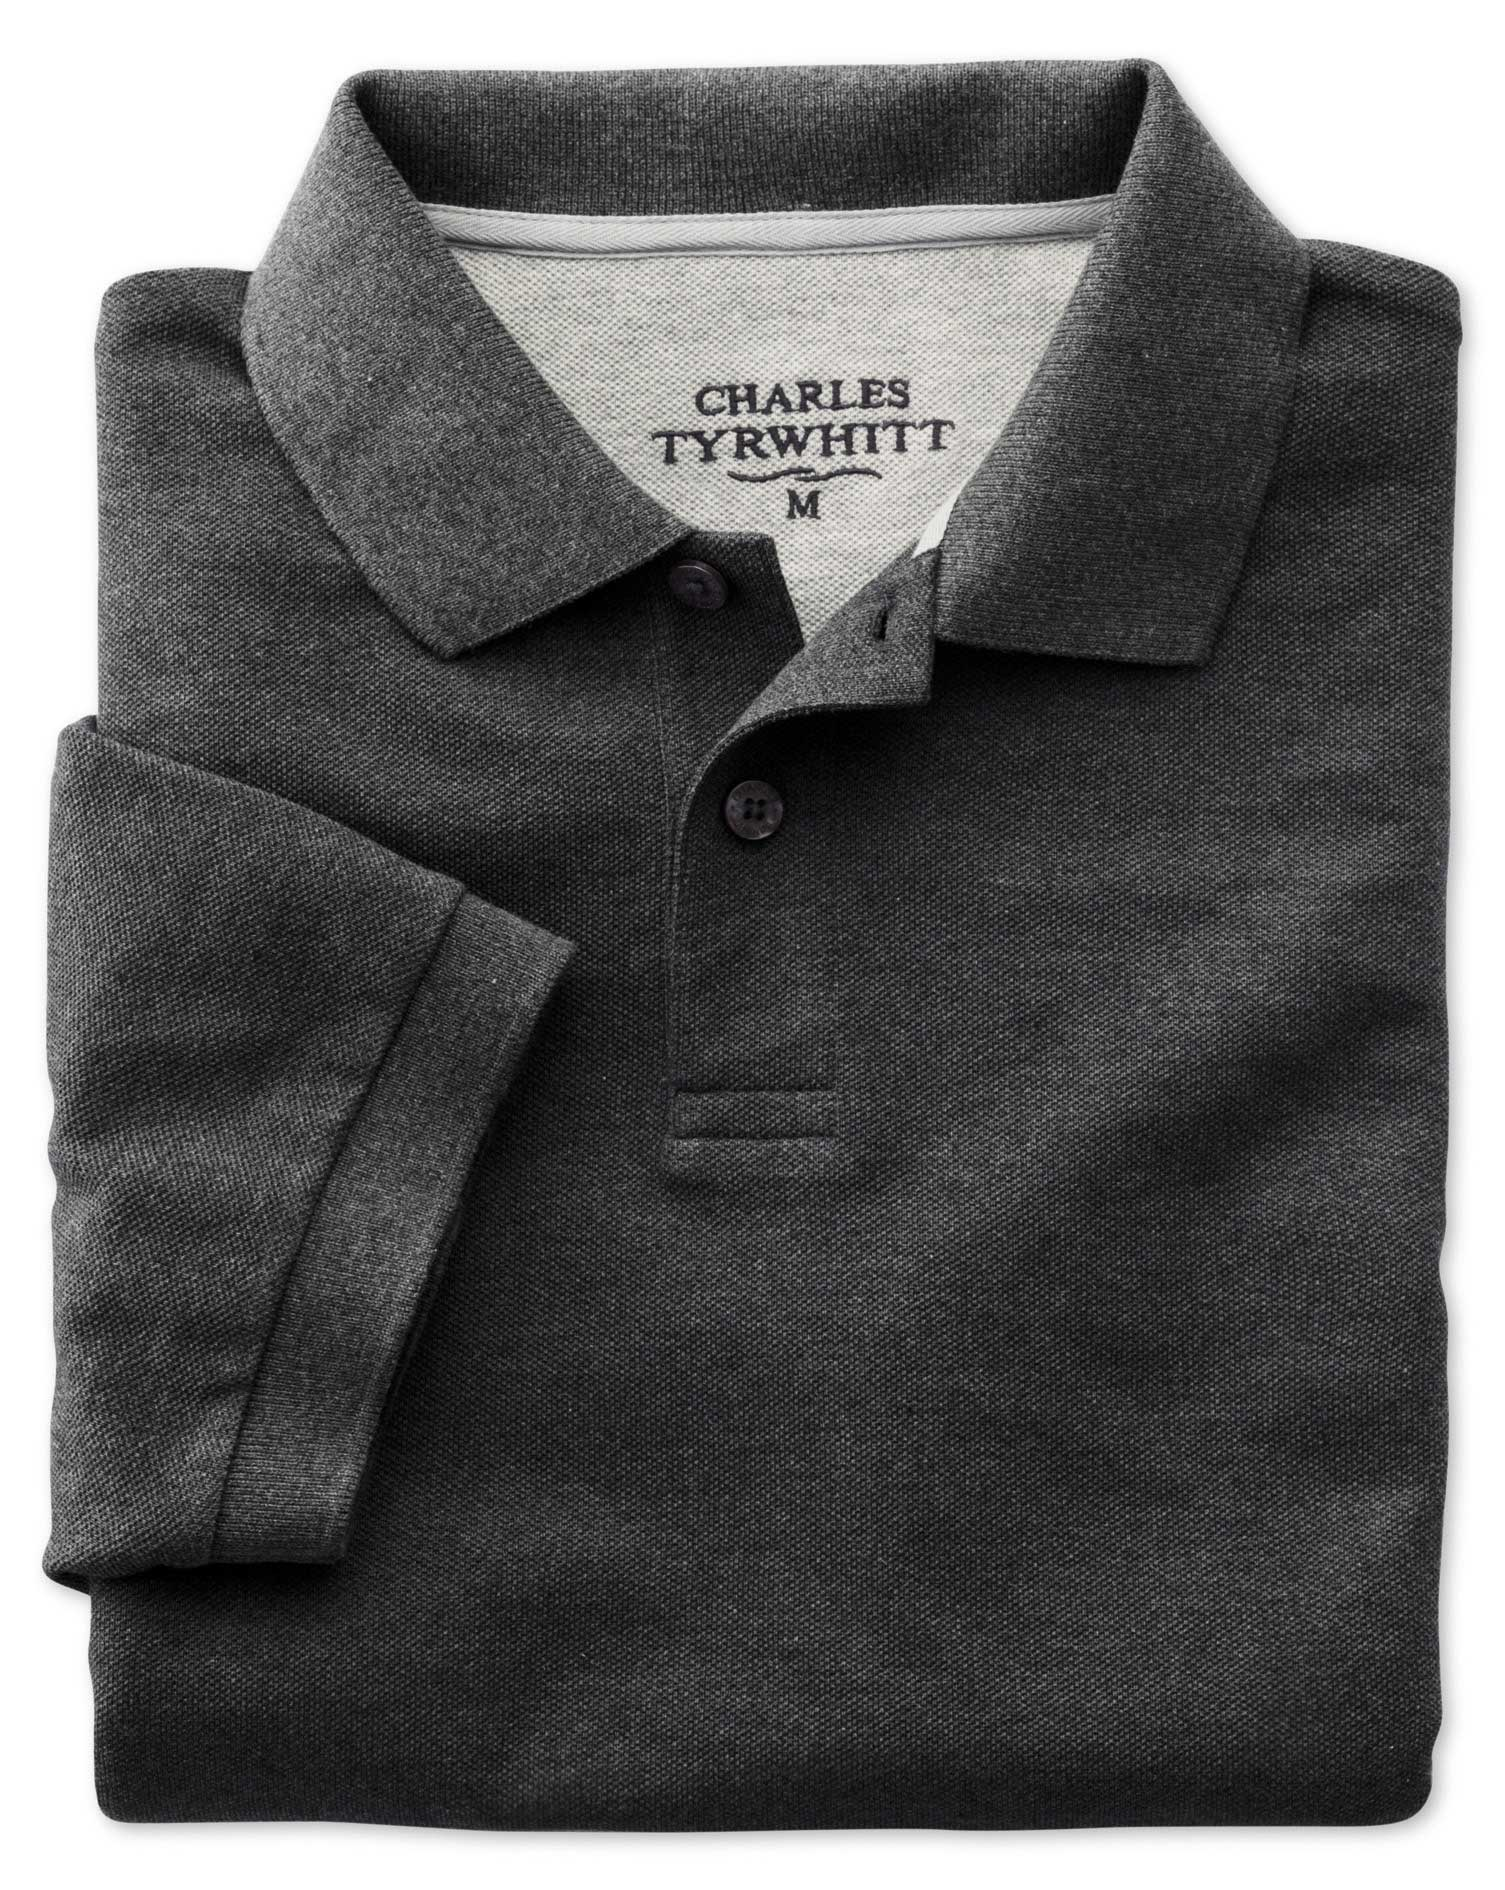 Charcoal Pique Cotton Polo Size Small by Charles Tyrwhitt